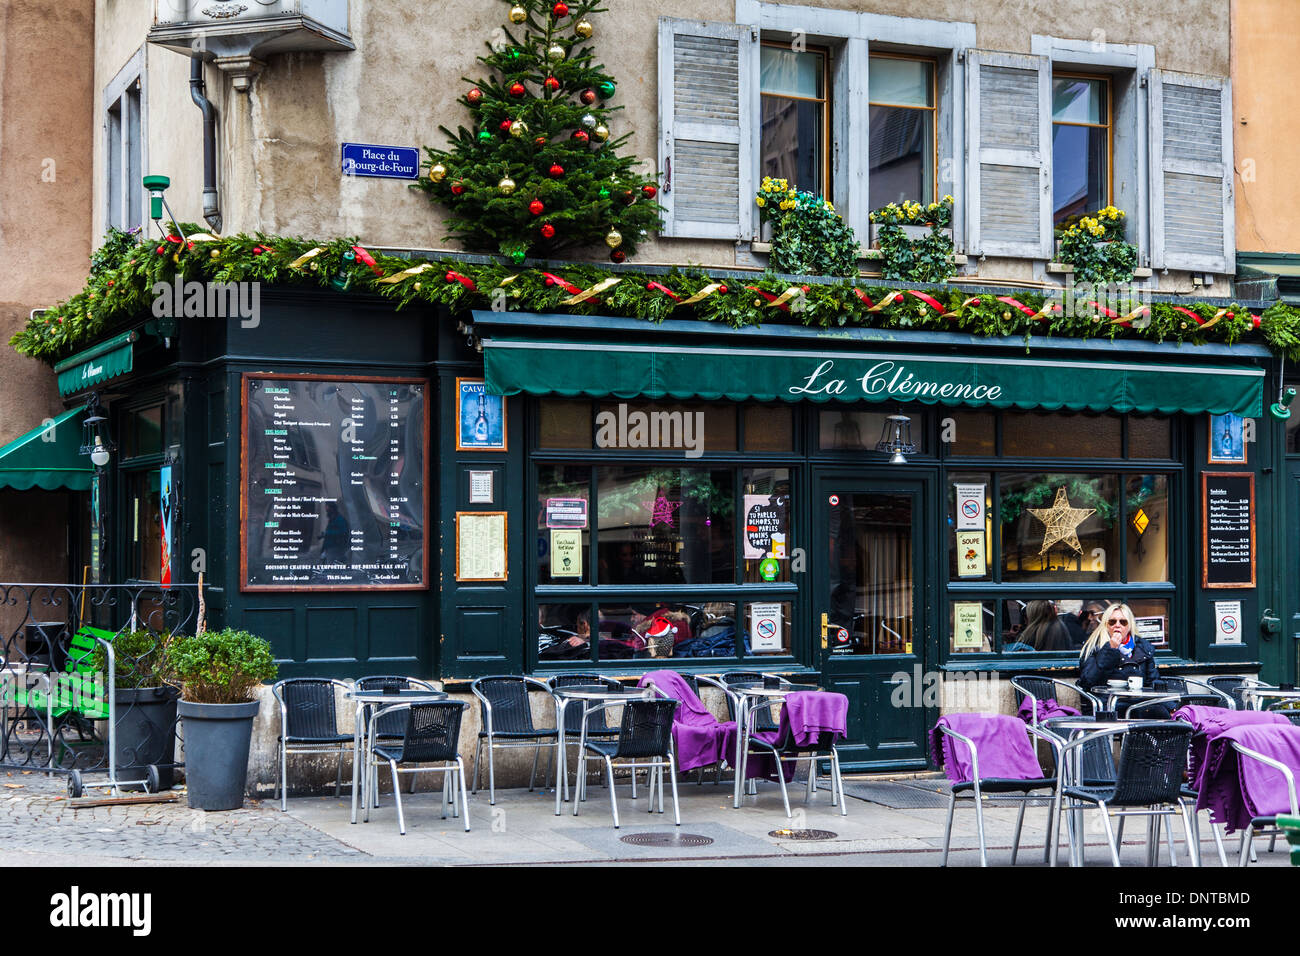 The very popular La Clemence coffee shop and bar in the Old Town of Geneva, Switzerland - Stock Image